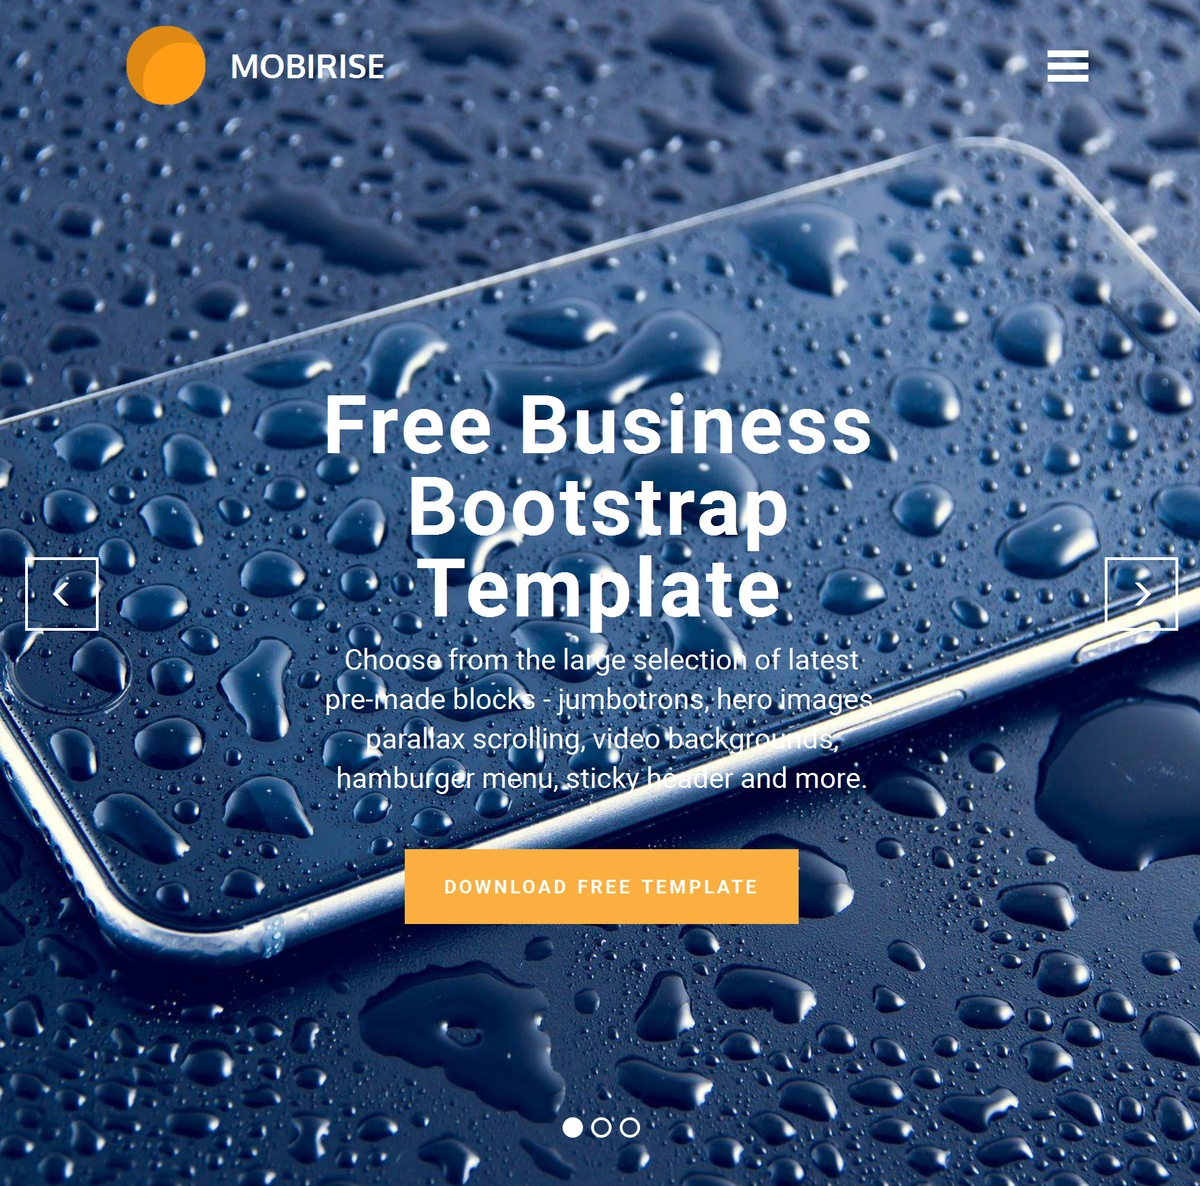 HTML5 Responsive Web Templates Themes Extensions